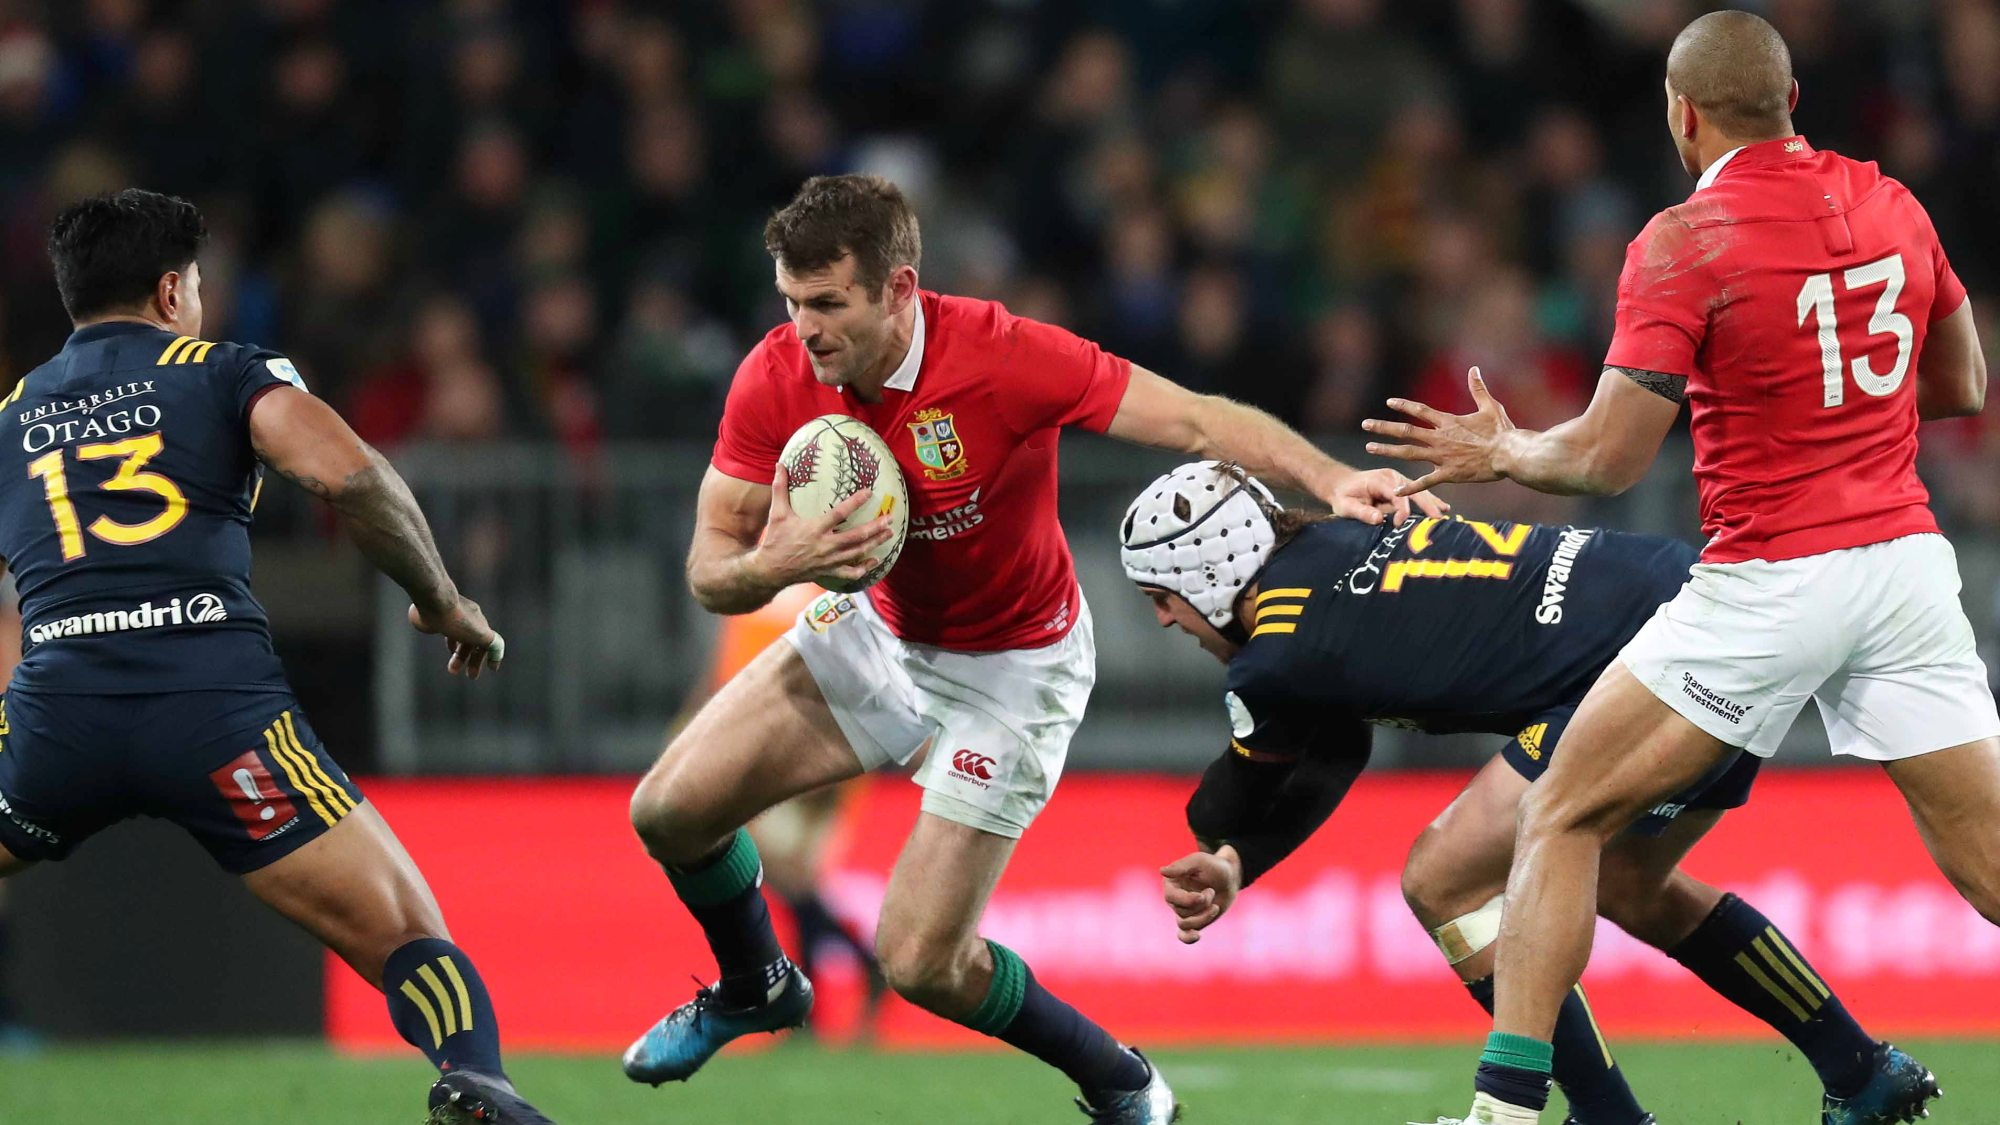 Payne ruled out of rest of Lions Tour